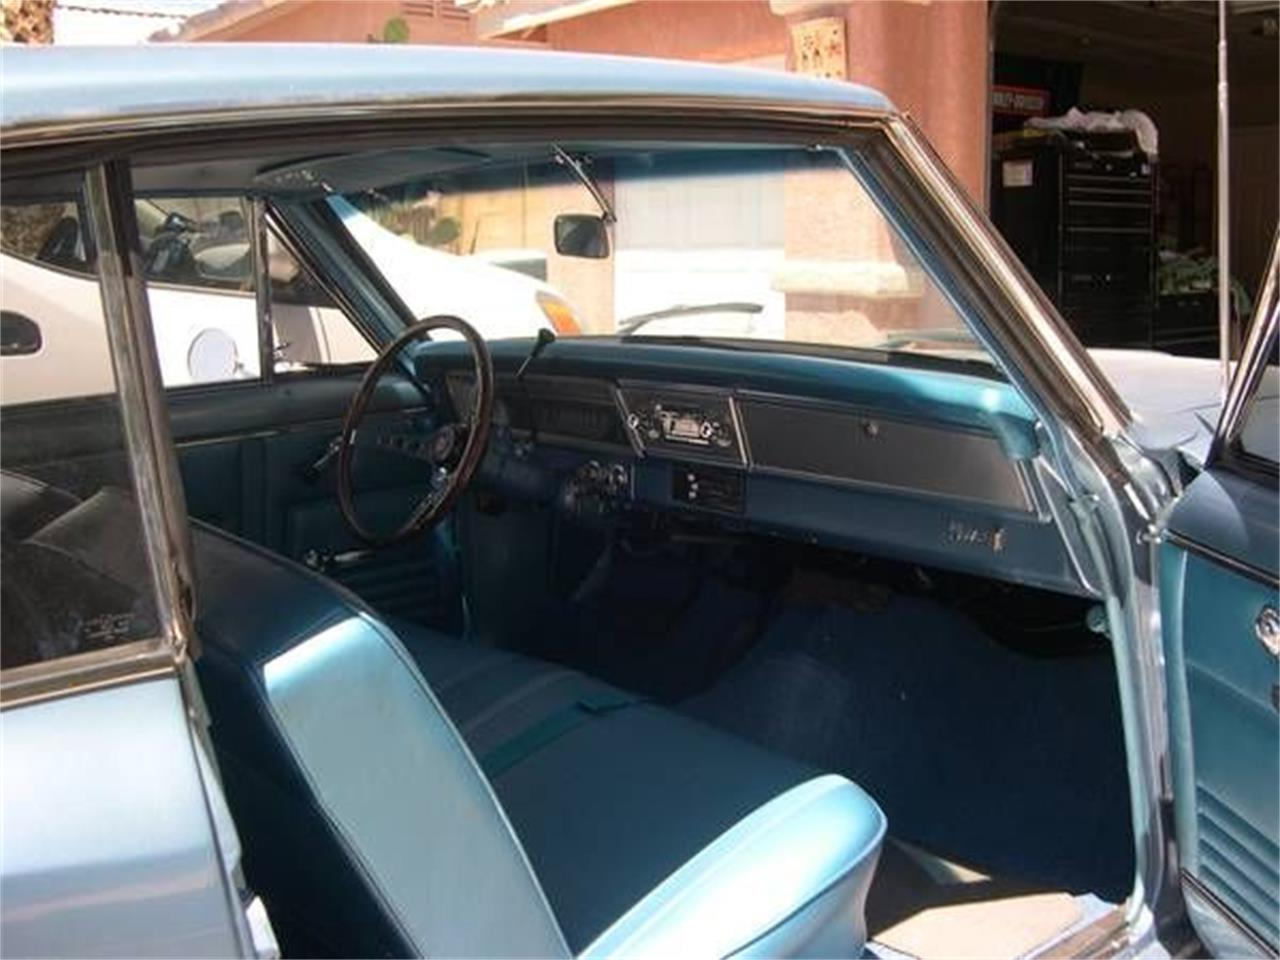 1967 Chevrolet Nova II for sale in Cadillac, MI – photo 6